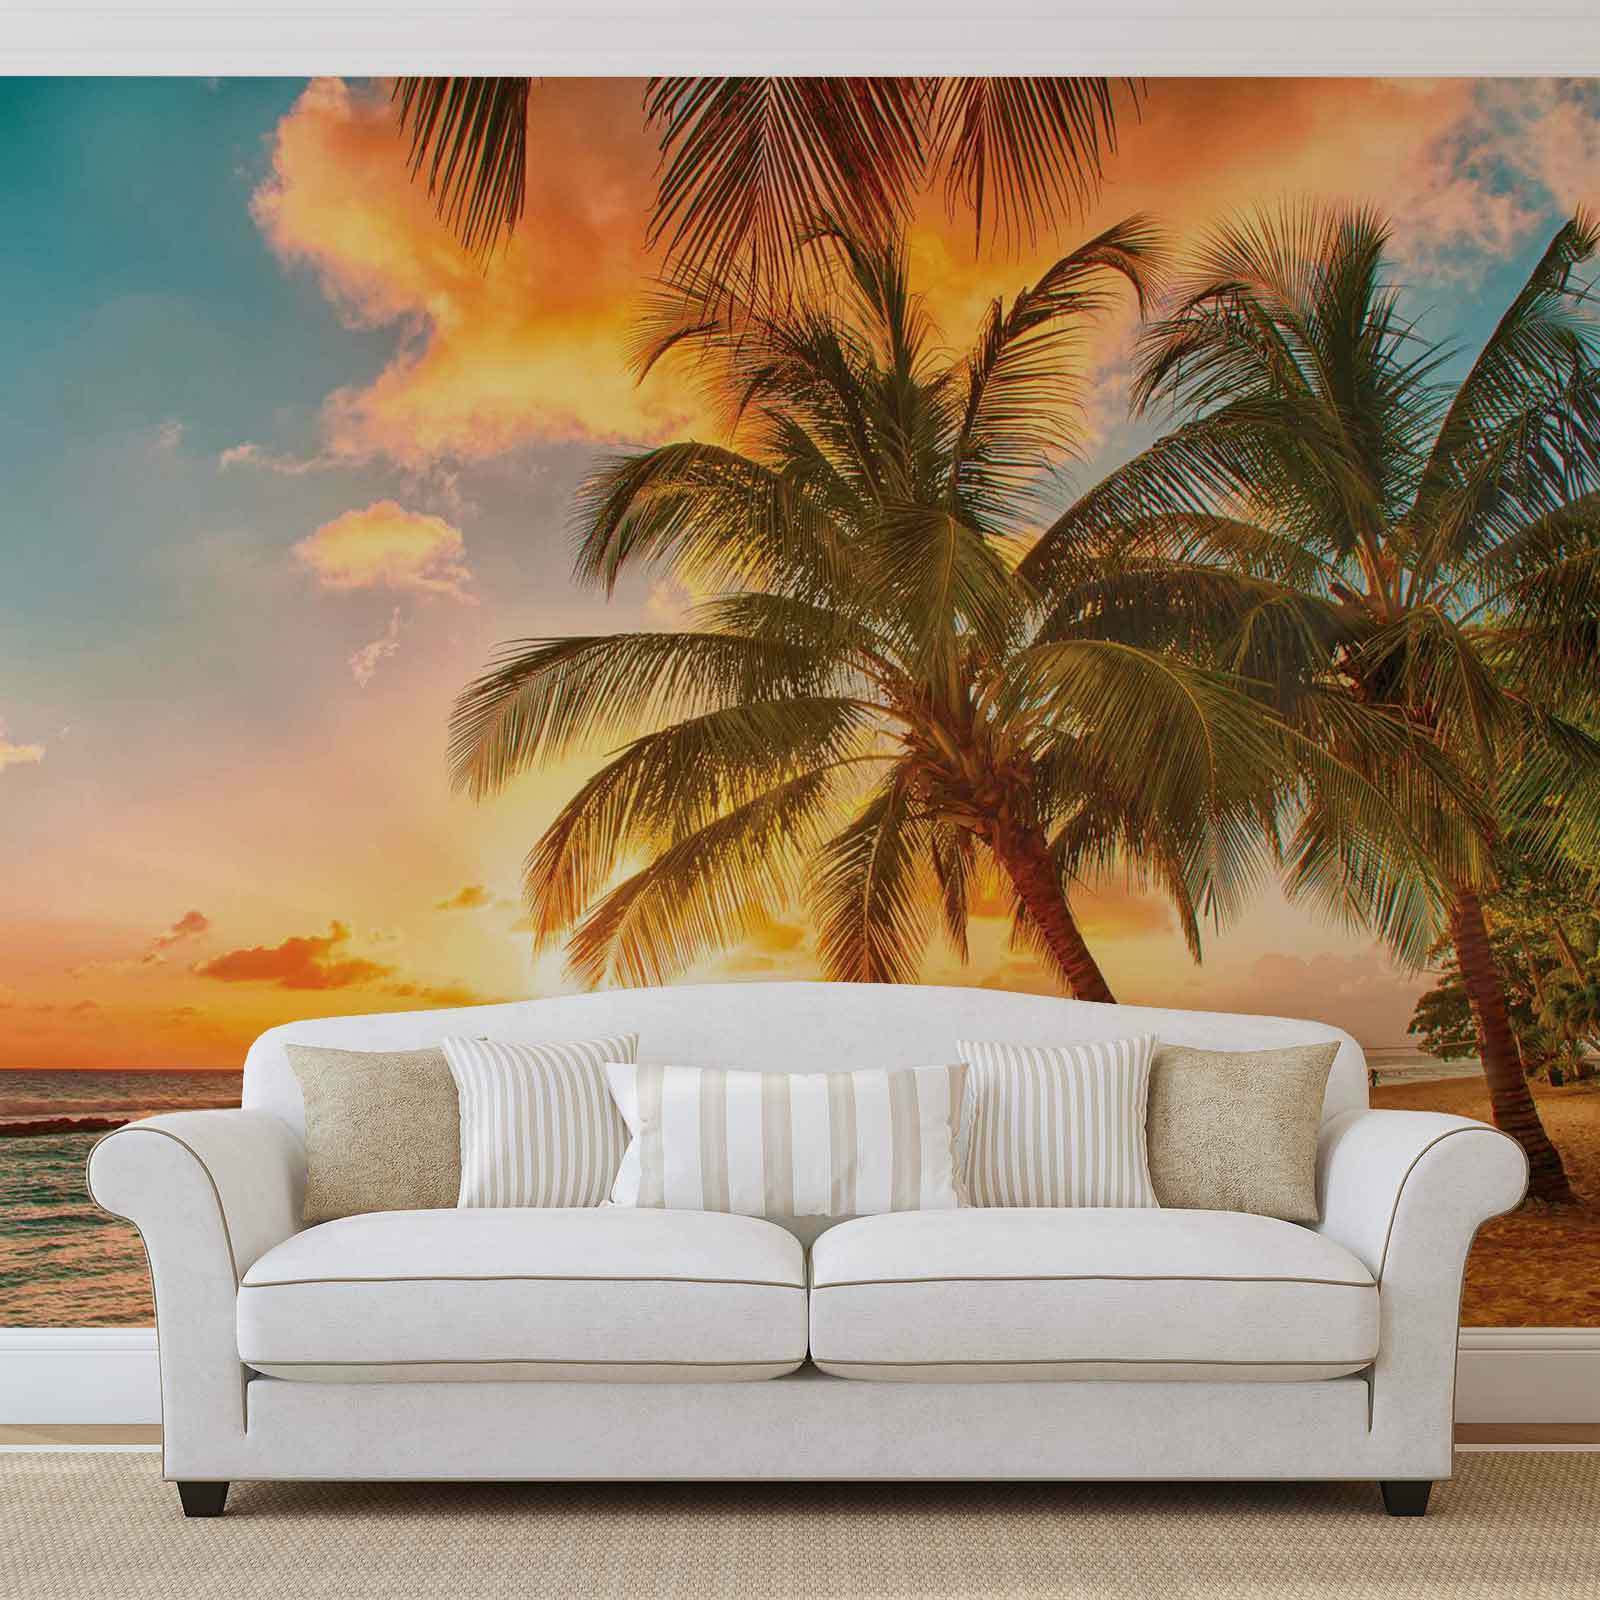 WALL MURAL PHOTO WALLPAPER XXL Palmtrees At The Beach (3393WS)